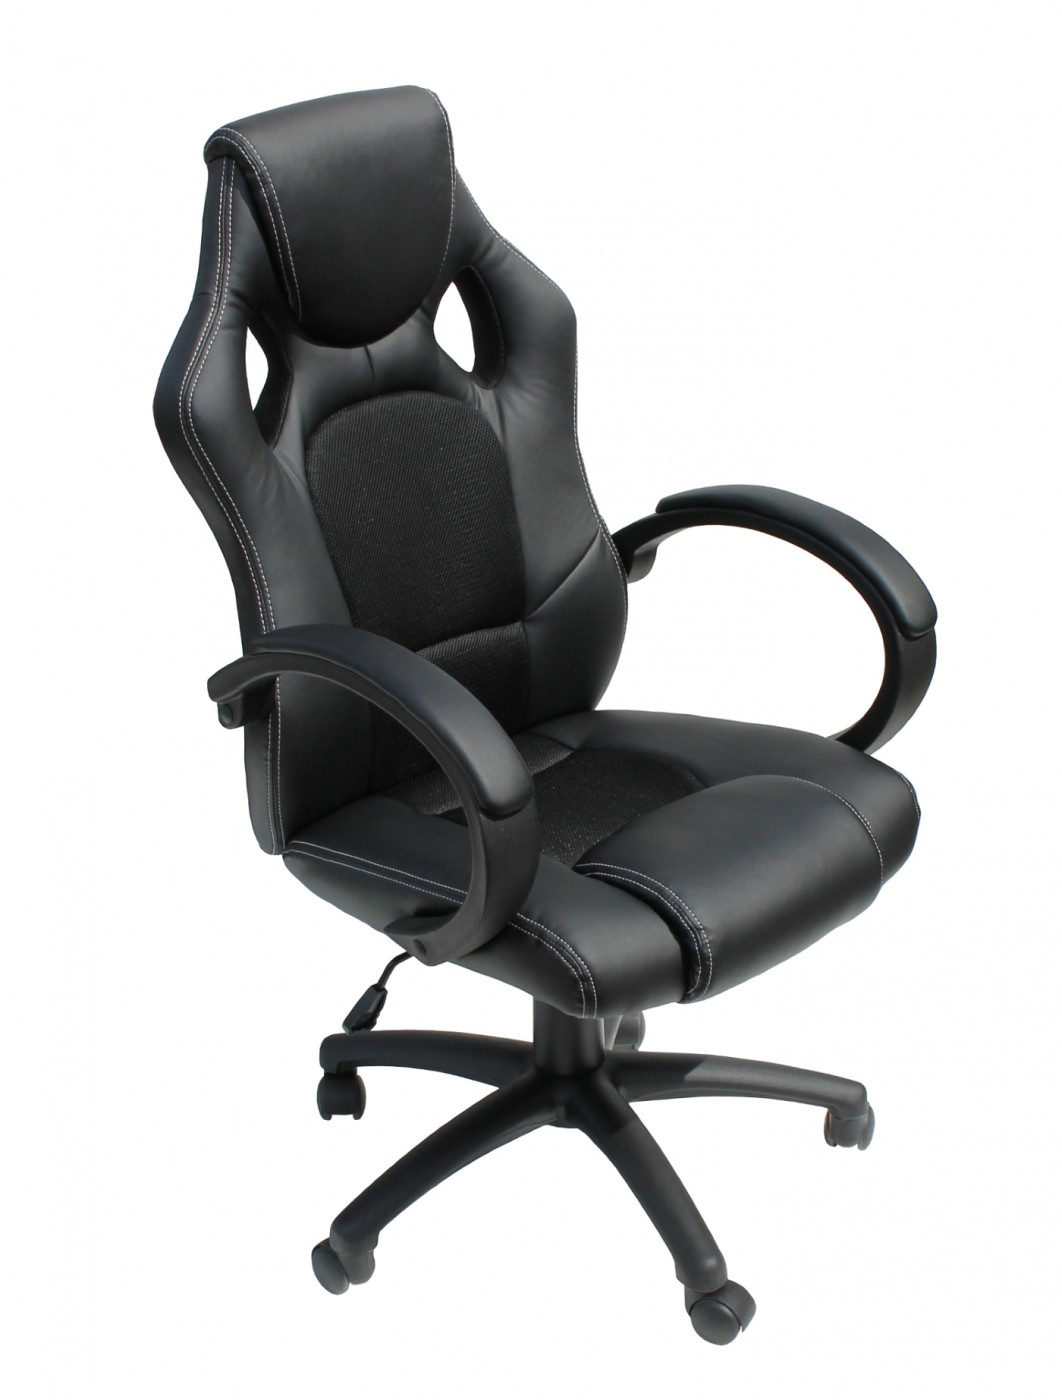 Giantex Modern Executive Racing Style Gaming Chair High